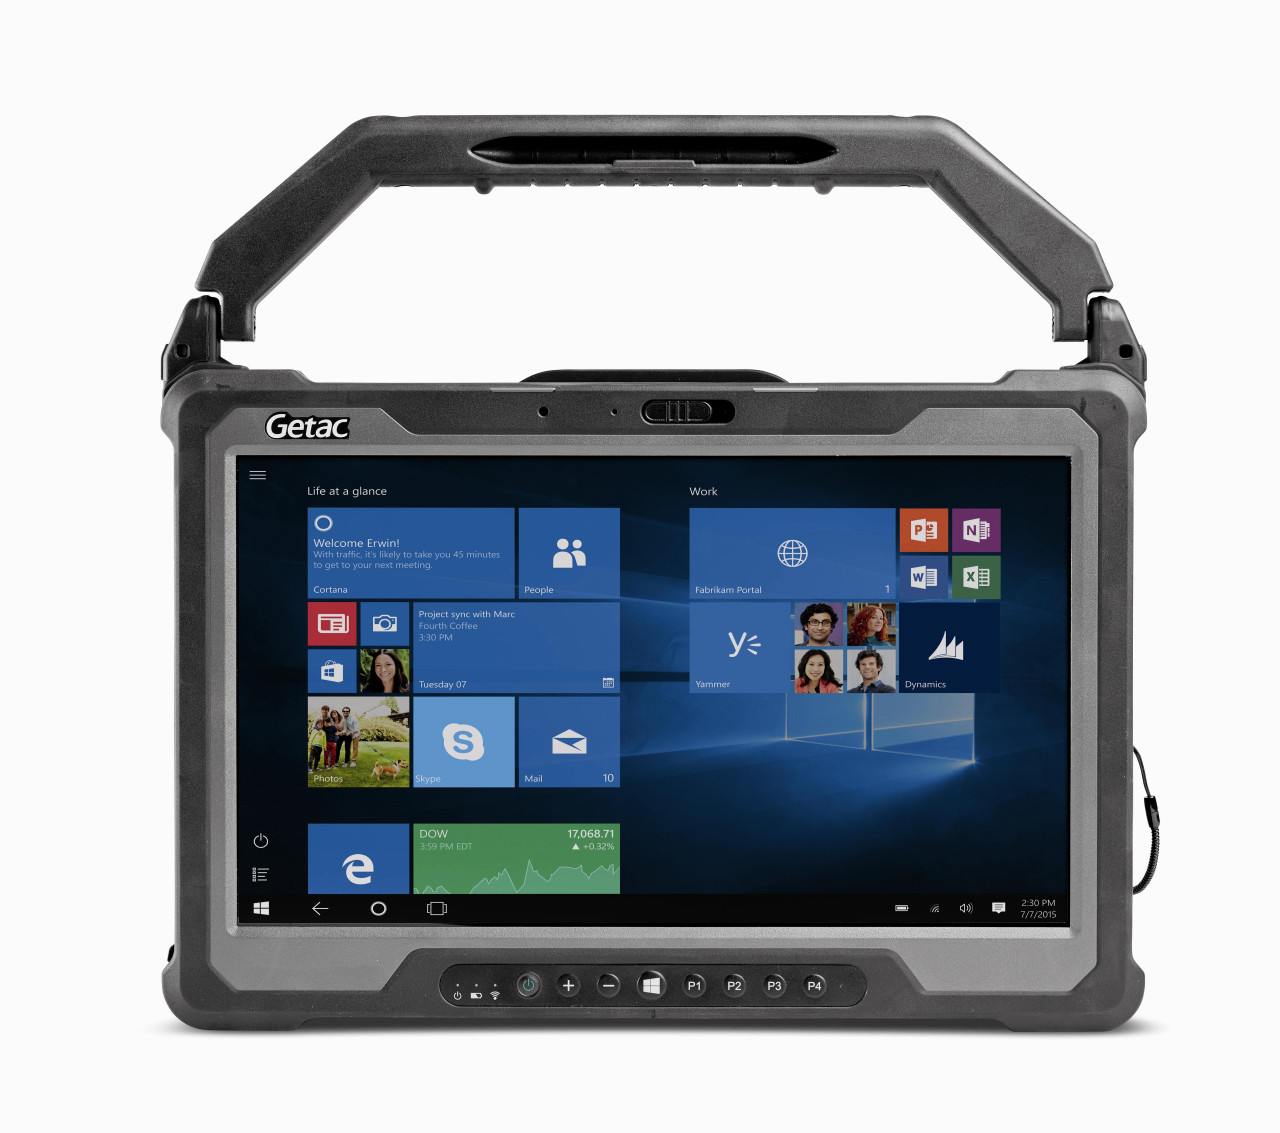 Getac A140 Basic,Intel Core i5-6200U Processor 2.3GHz,(No Webcam),Microsoft Windows 10 Pro x64 with 8GB RAM,256GB SSD,Sunlight Readable (LCD+ Touchscreen),US Power Cord,Wifi+BT,Micro SD, LAN x 2, Smart Card reader, Default -21C, IP65